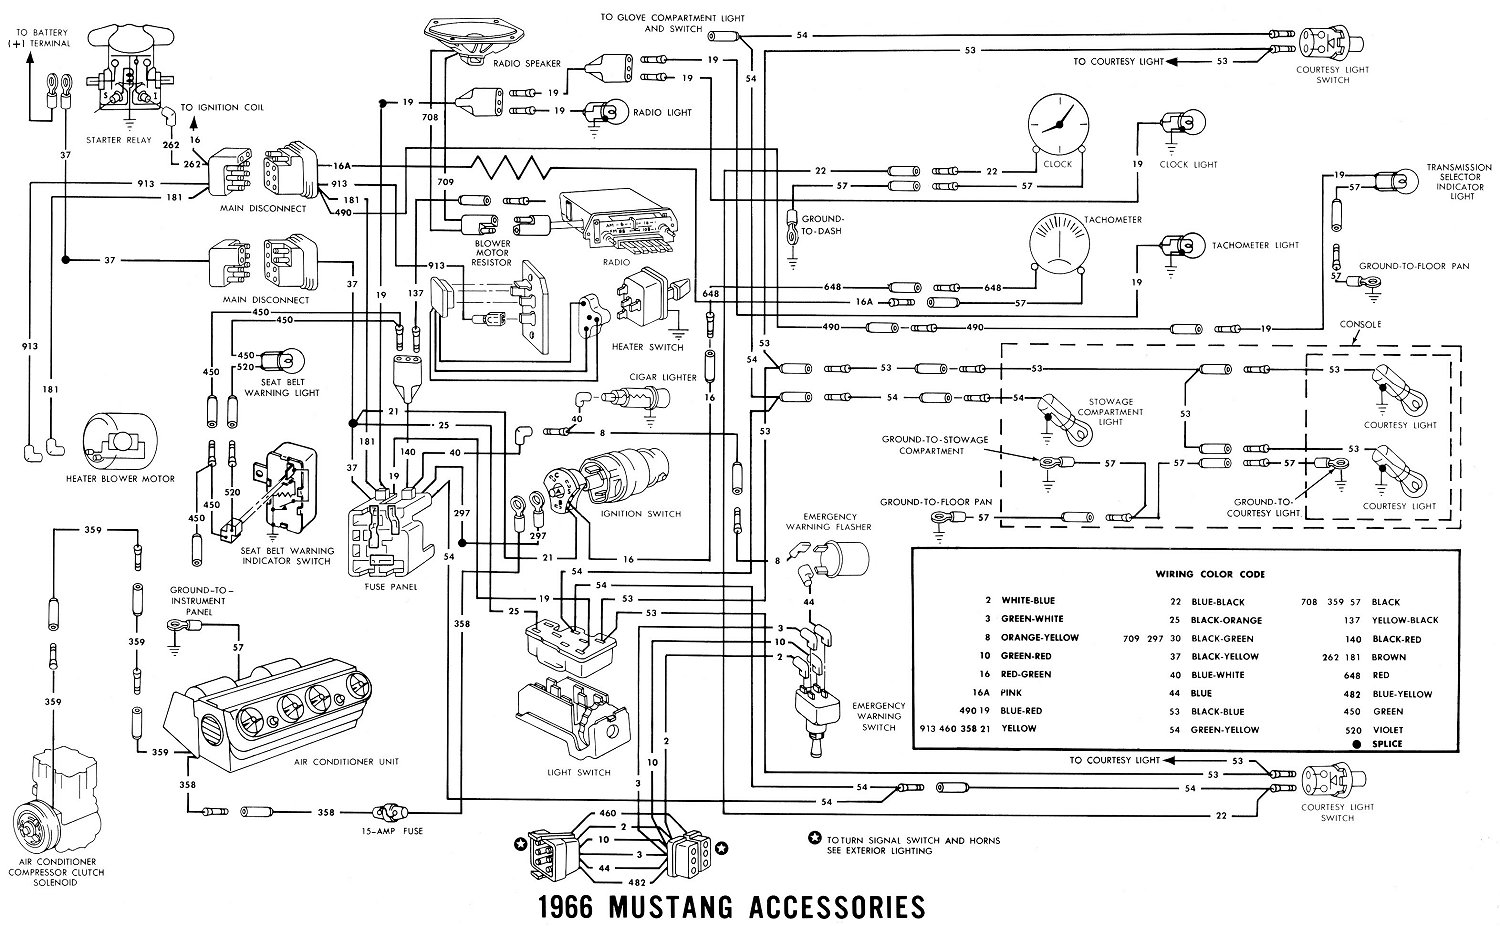 66 Mustang Wiring Diagram - DIY Enthusiasts Wiring Diagrams •